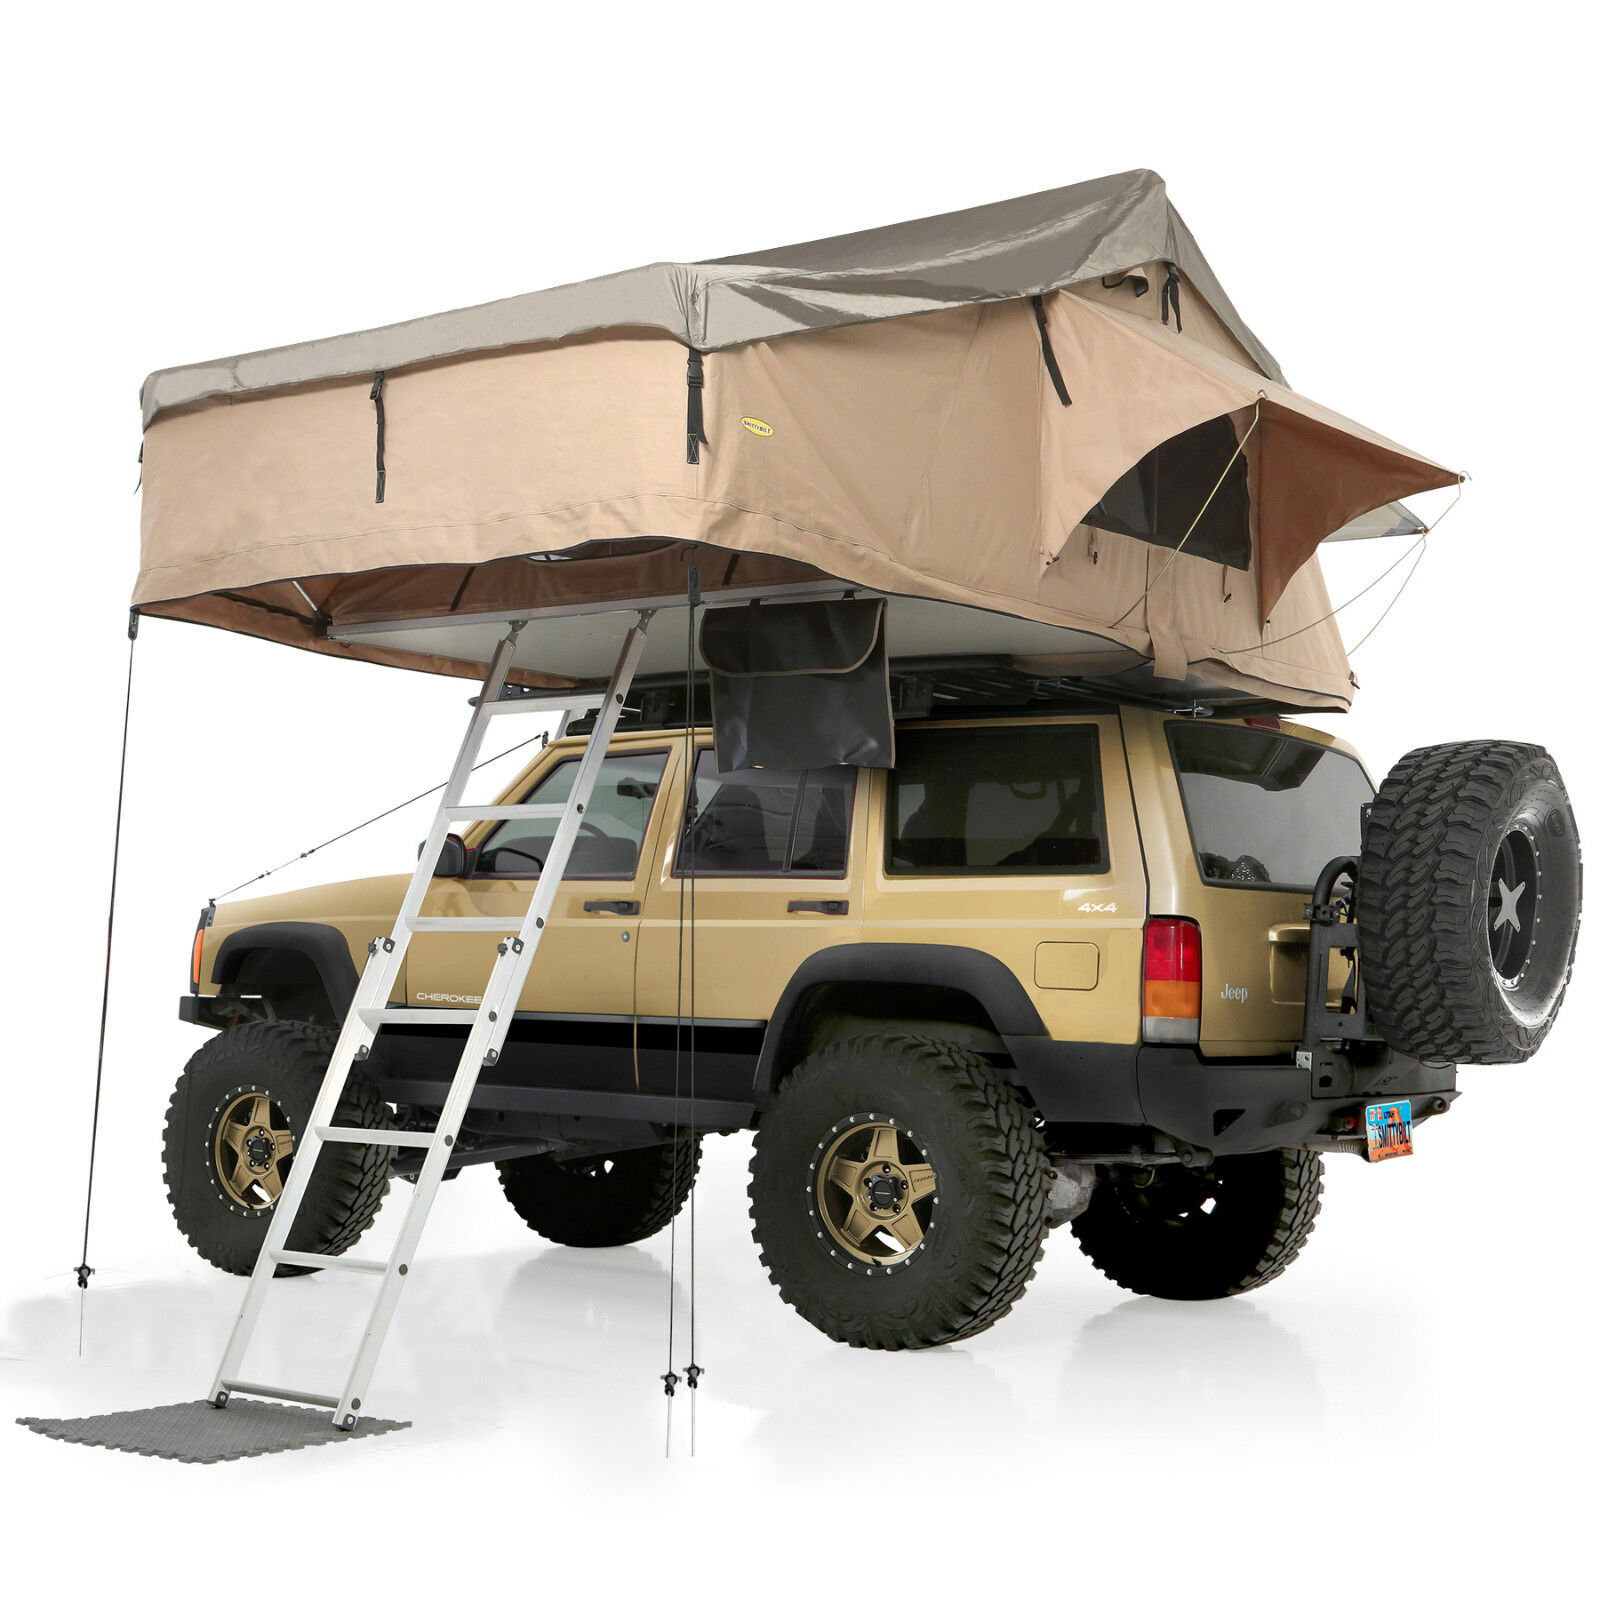 Smittybilt Xl Overlander Roof Top Tent W King Size